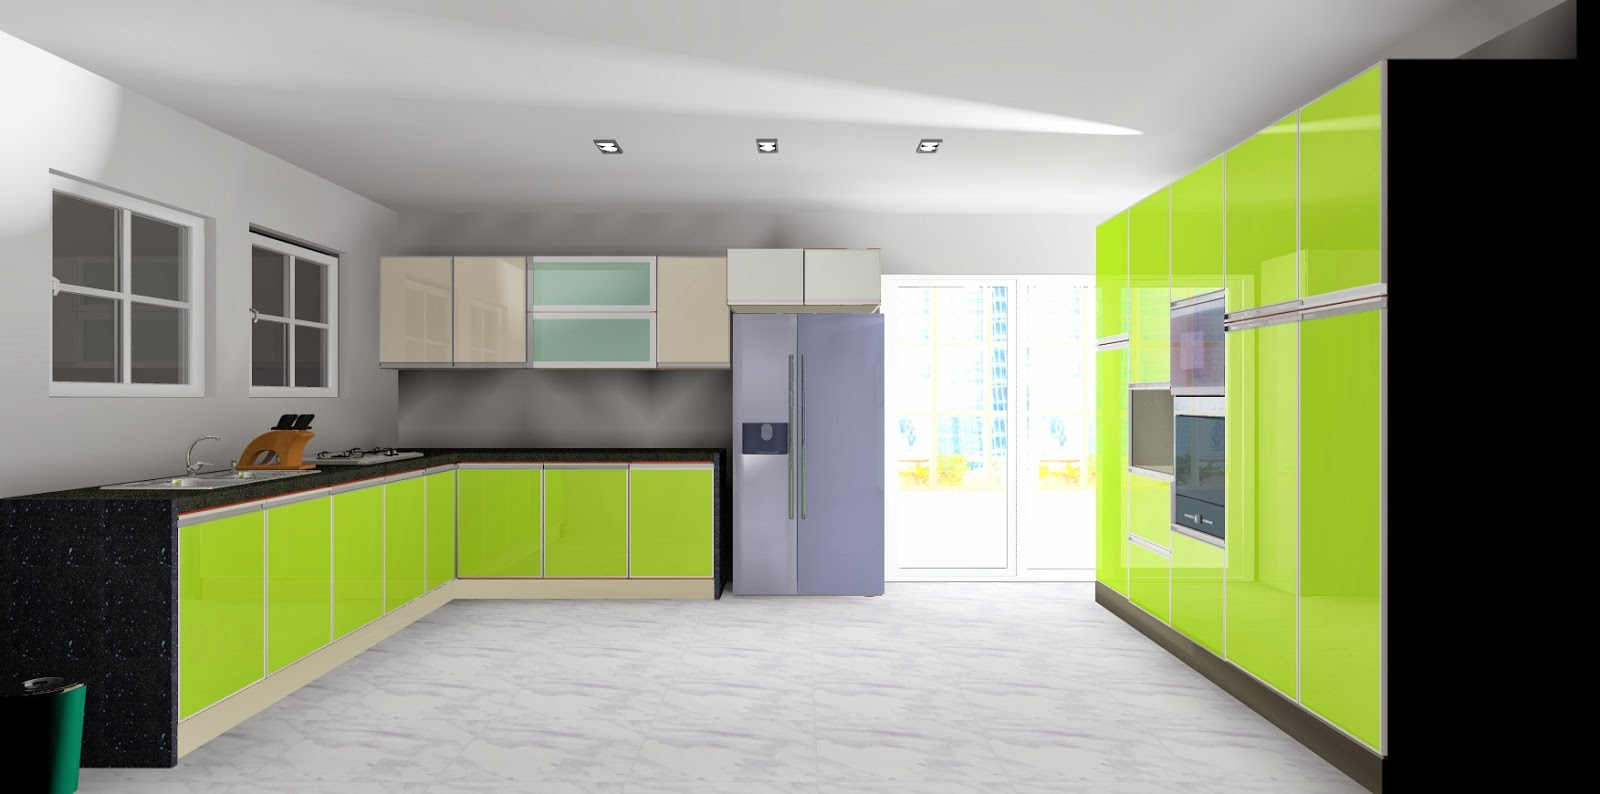 Port Son Kabinet Dapur Pamprey Cabinets